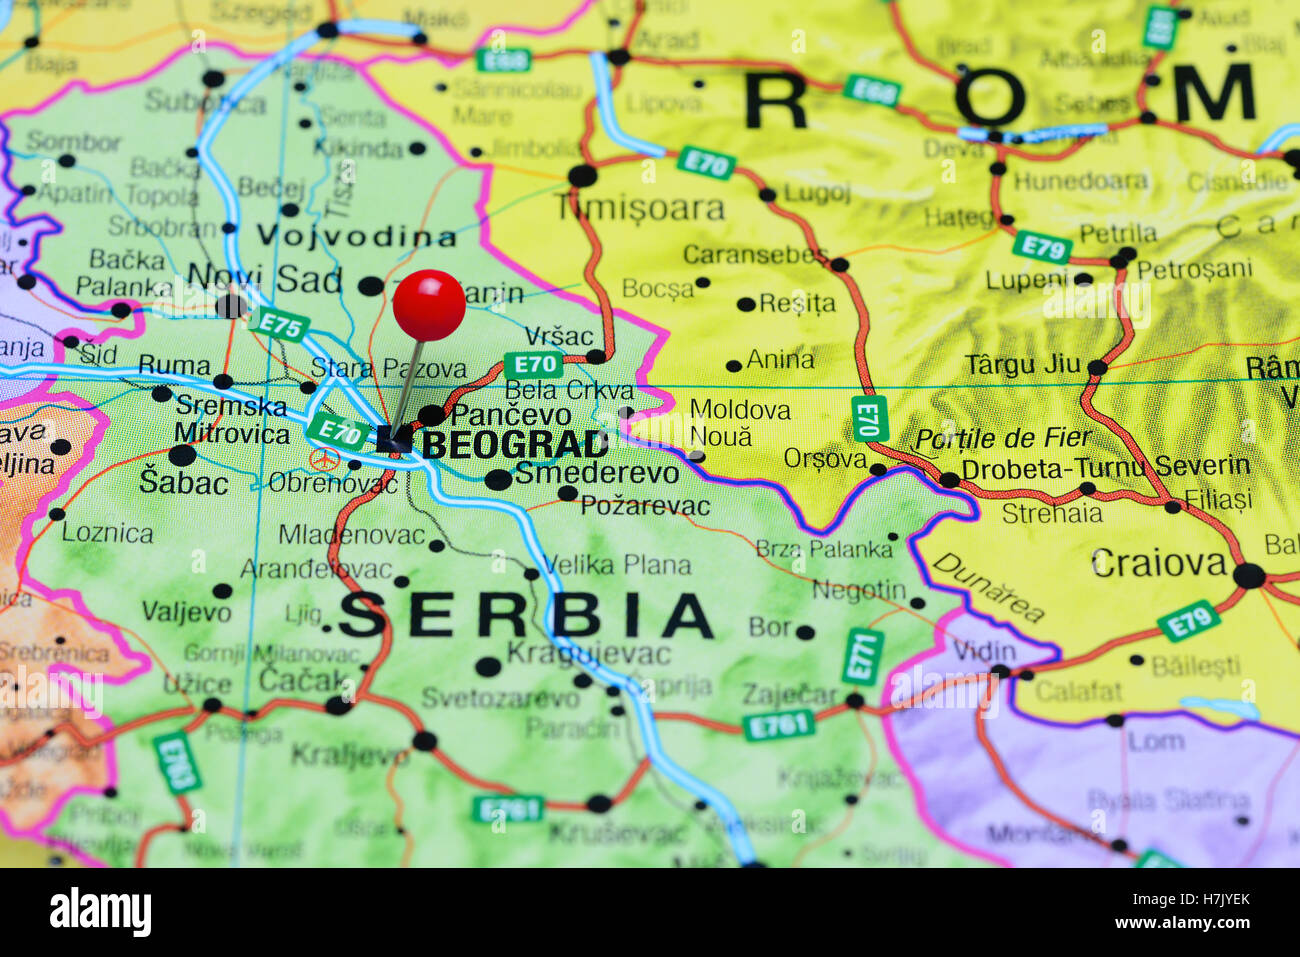 Belgrade pinned on a map of Serbia Stock Photo 125191883 Alamy